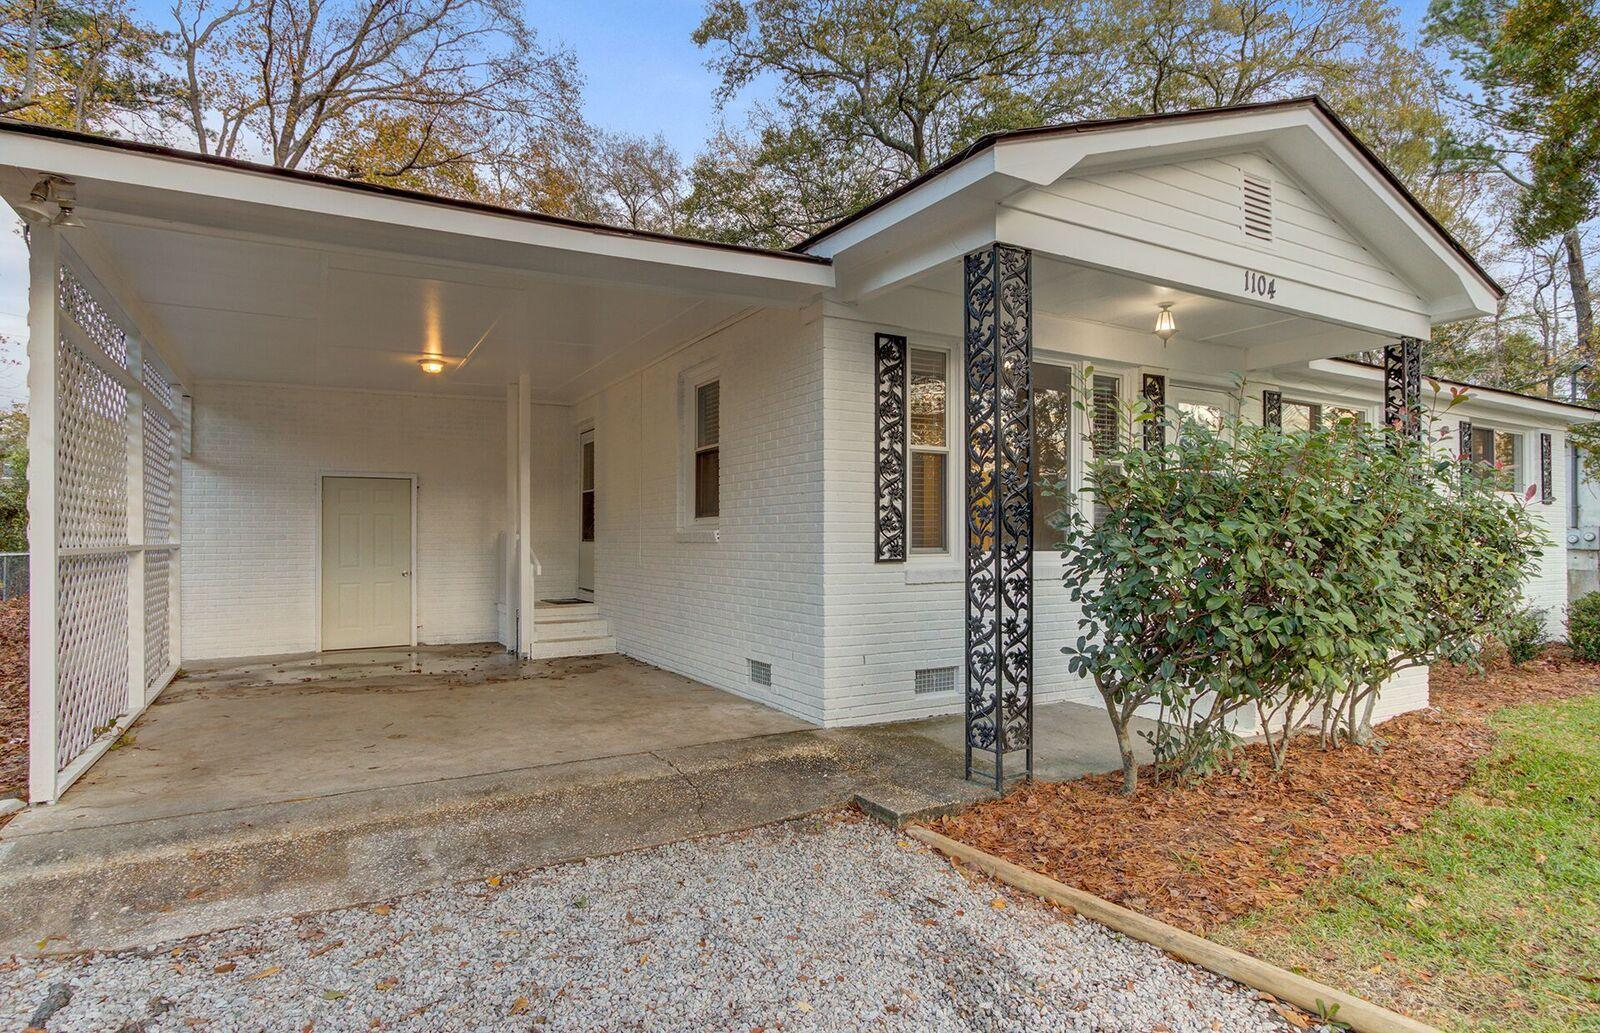 West Glow Homes For Sale - 1104 Crull, Charleston, SC - 3